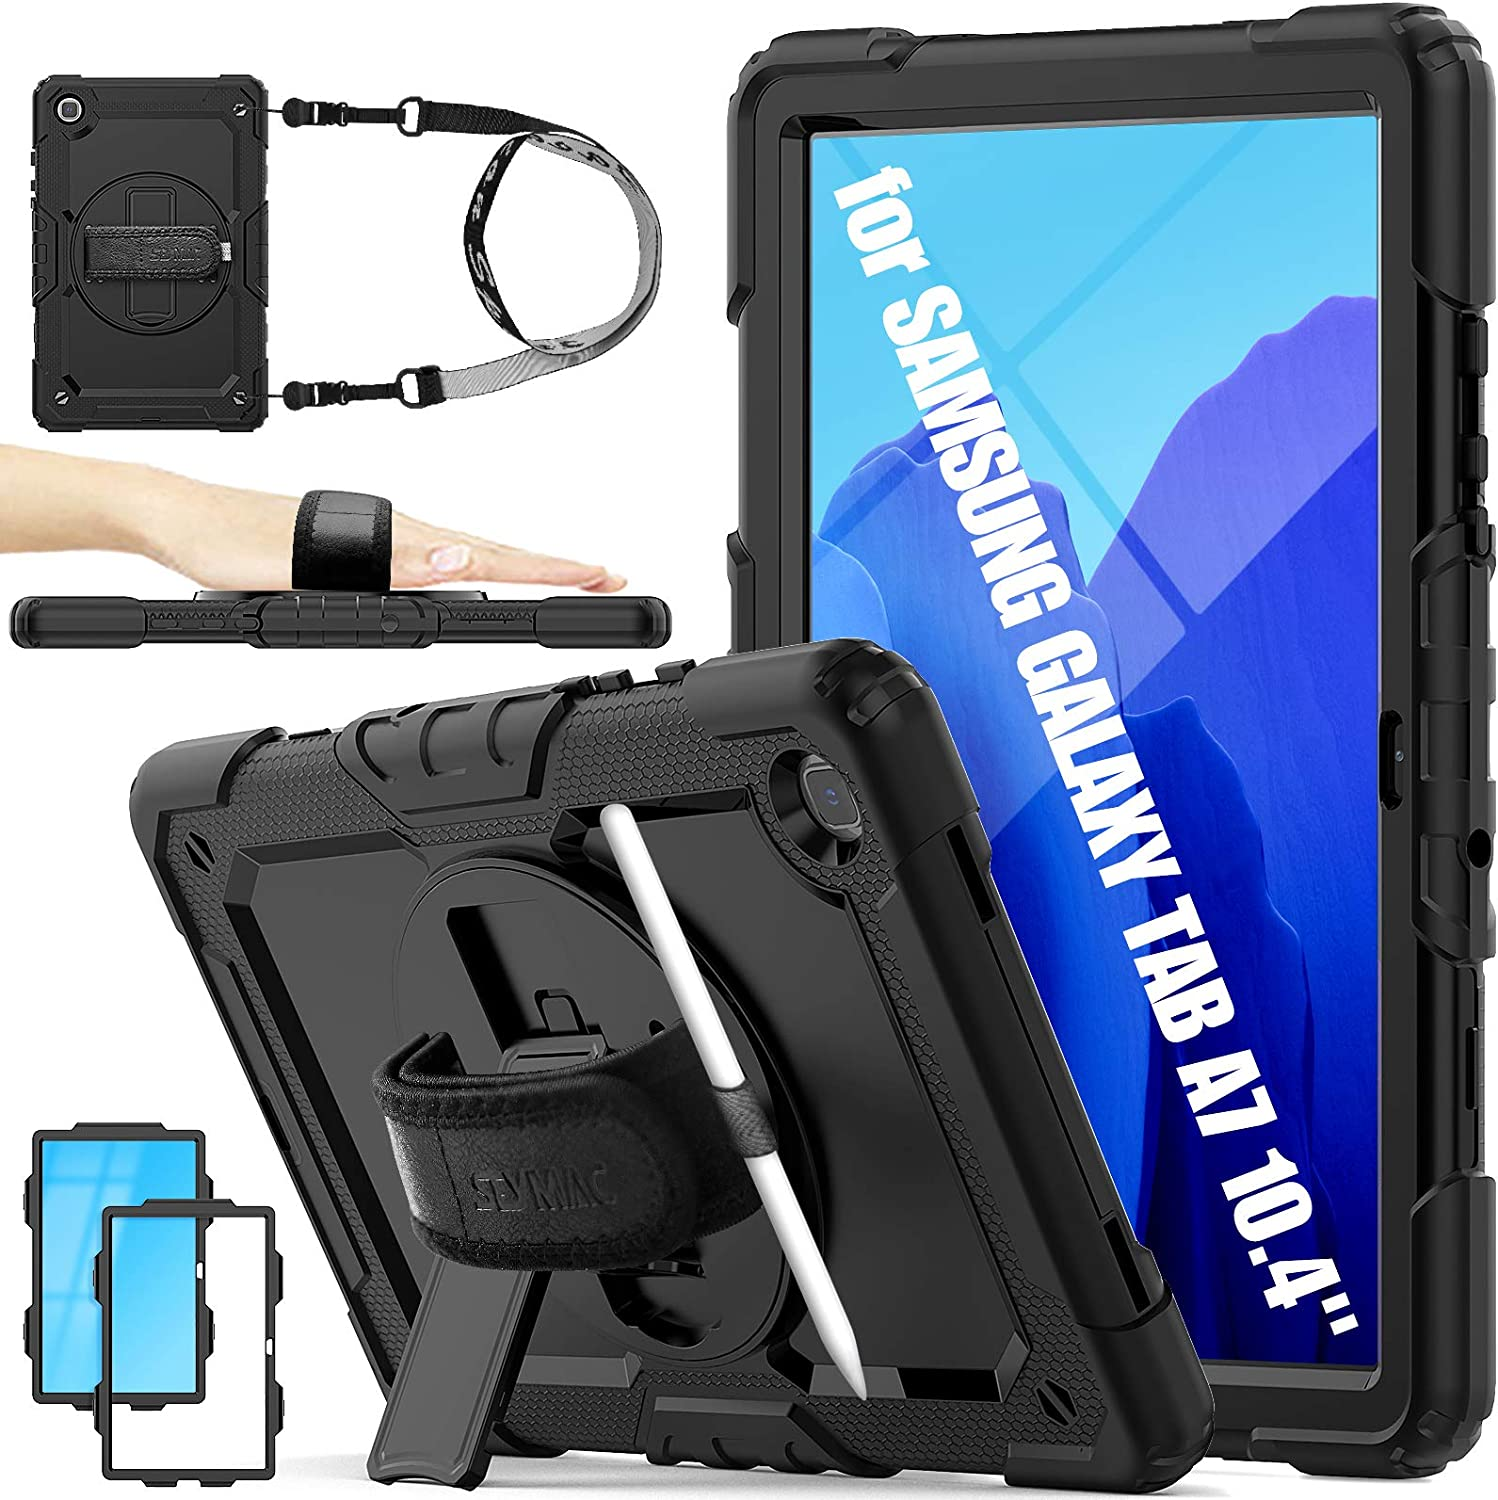 SEYMAC stock Case for Samsung Galaxy Tab A7 10.4'' 2020, 3-Layer Drop Protection Case with [360 Degrees Rotate Stand] Hand Strap &[Pencil Holder] [Screen Protector] for Galaxy Tab A7 10.4 inch (Black)